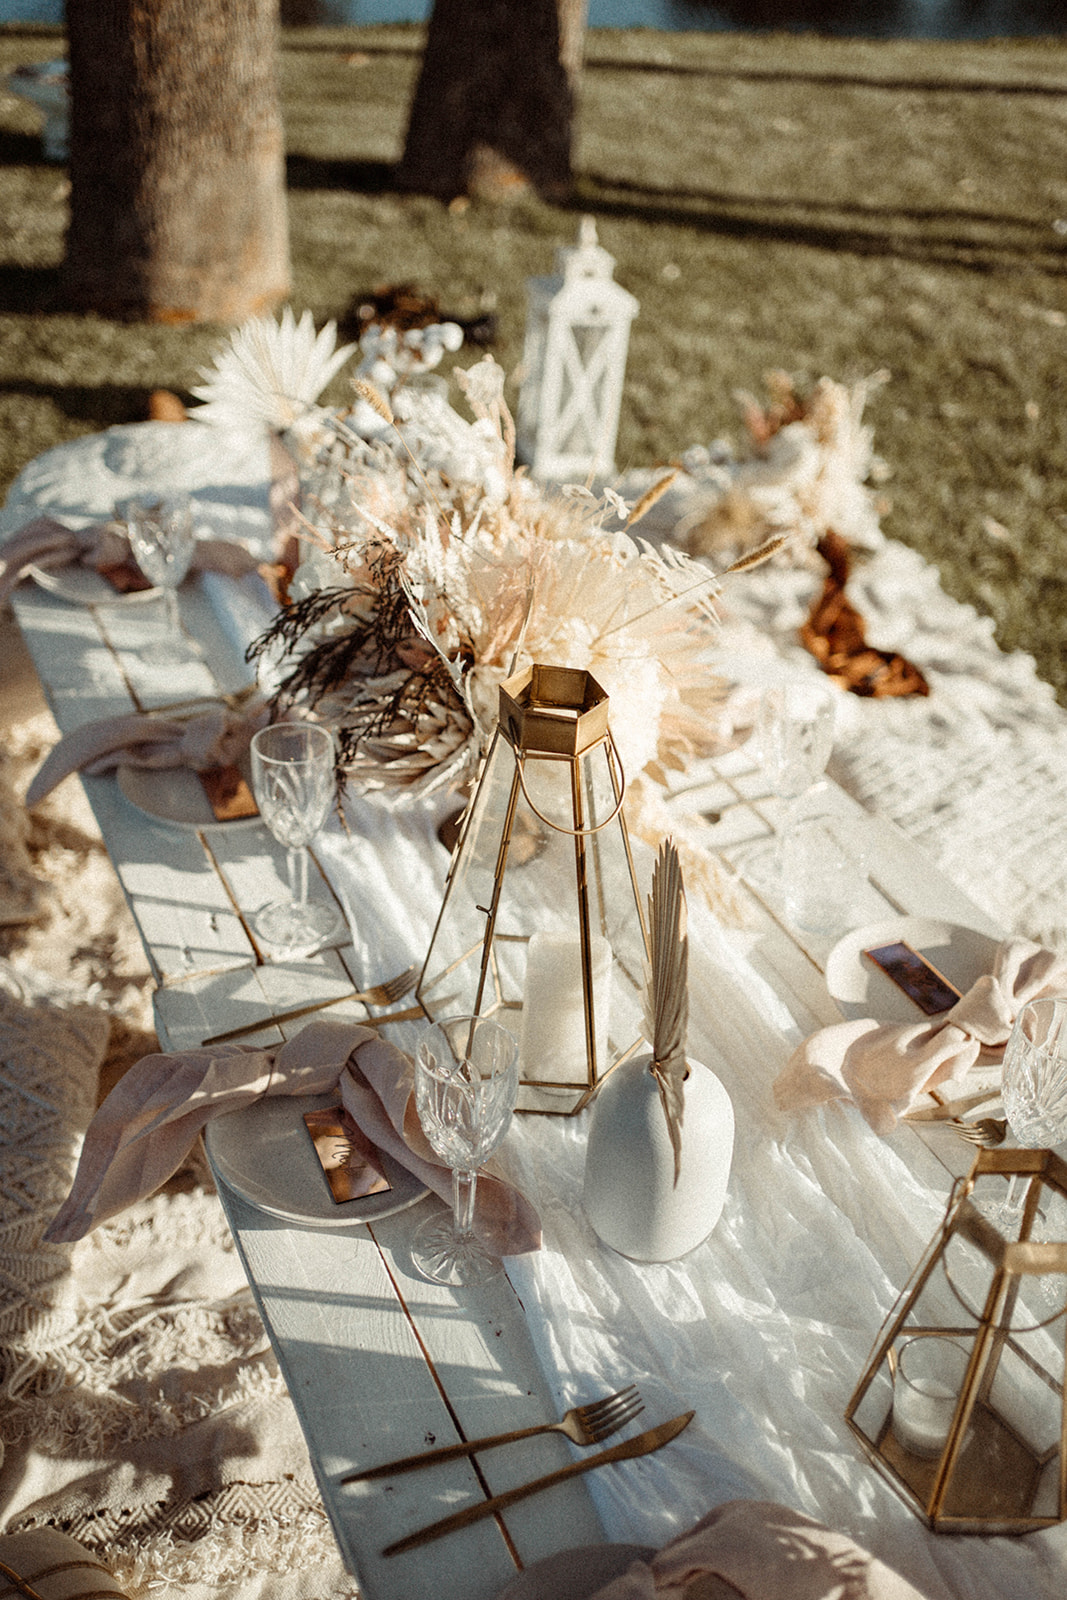 alannah liddell photography weddings perth bridal gown floral design venue styling